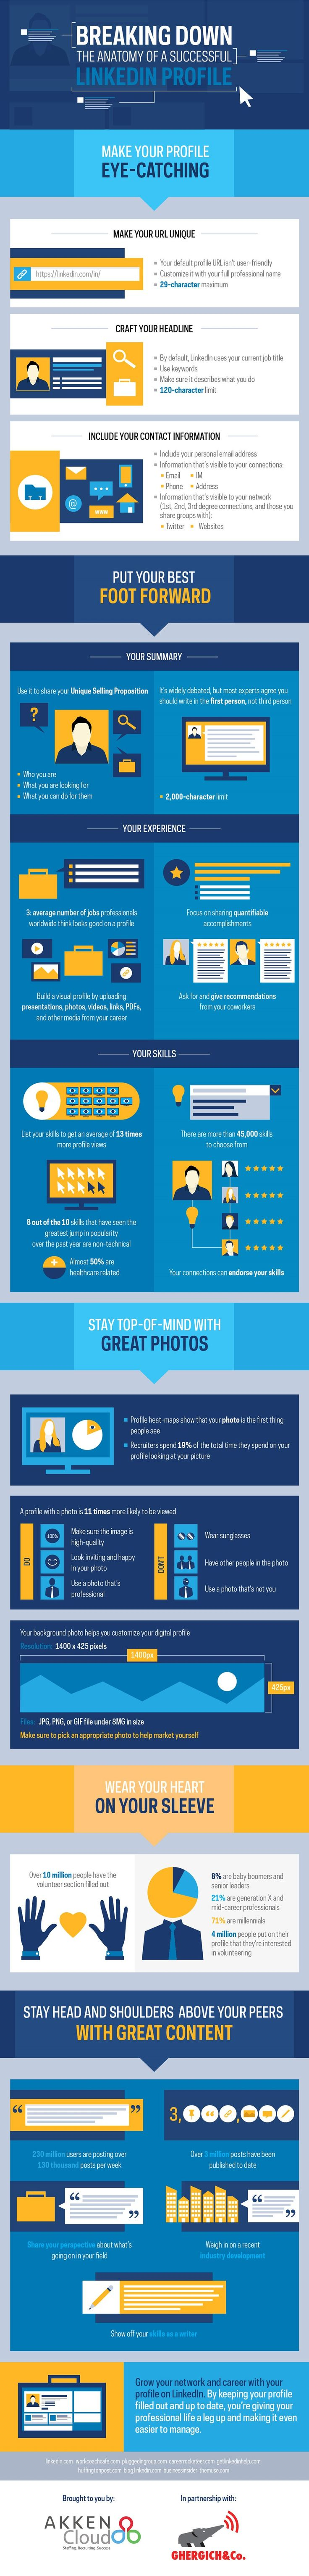 Career Management - To stand out amid the millions of LinkedIn users, you need a stellar profile that captures attention and starts conversations. This infographic can help you get started on creating that...